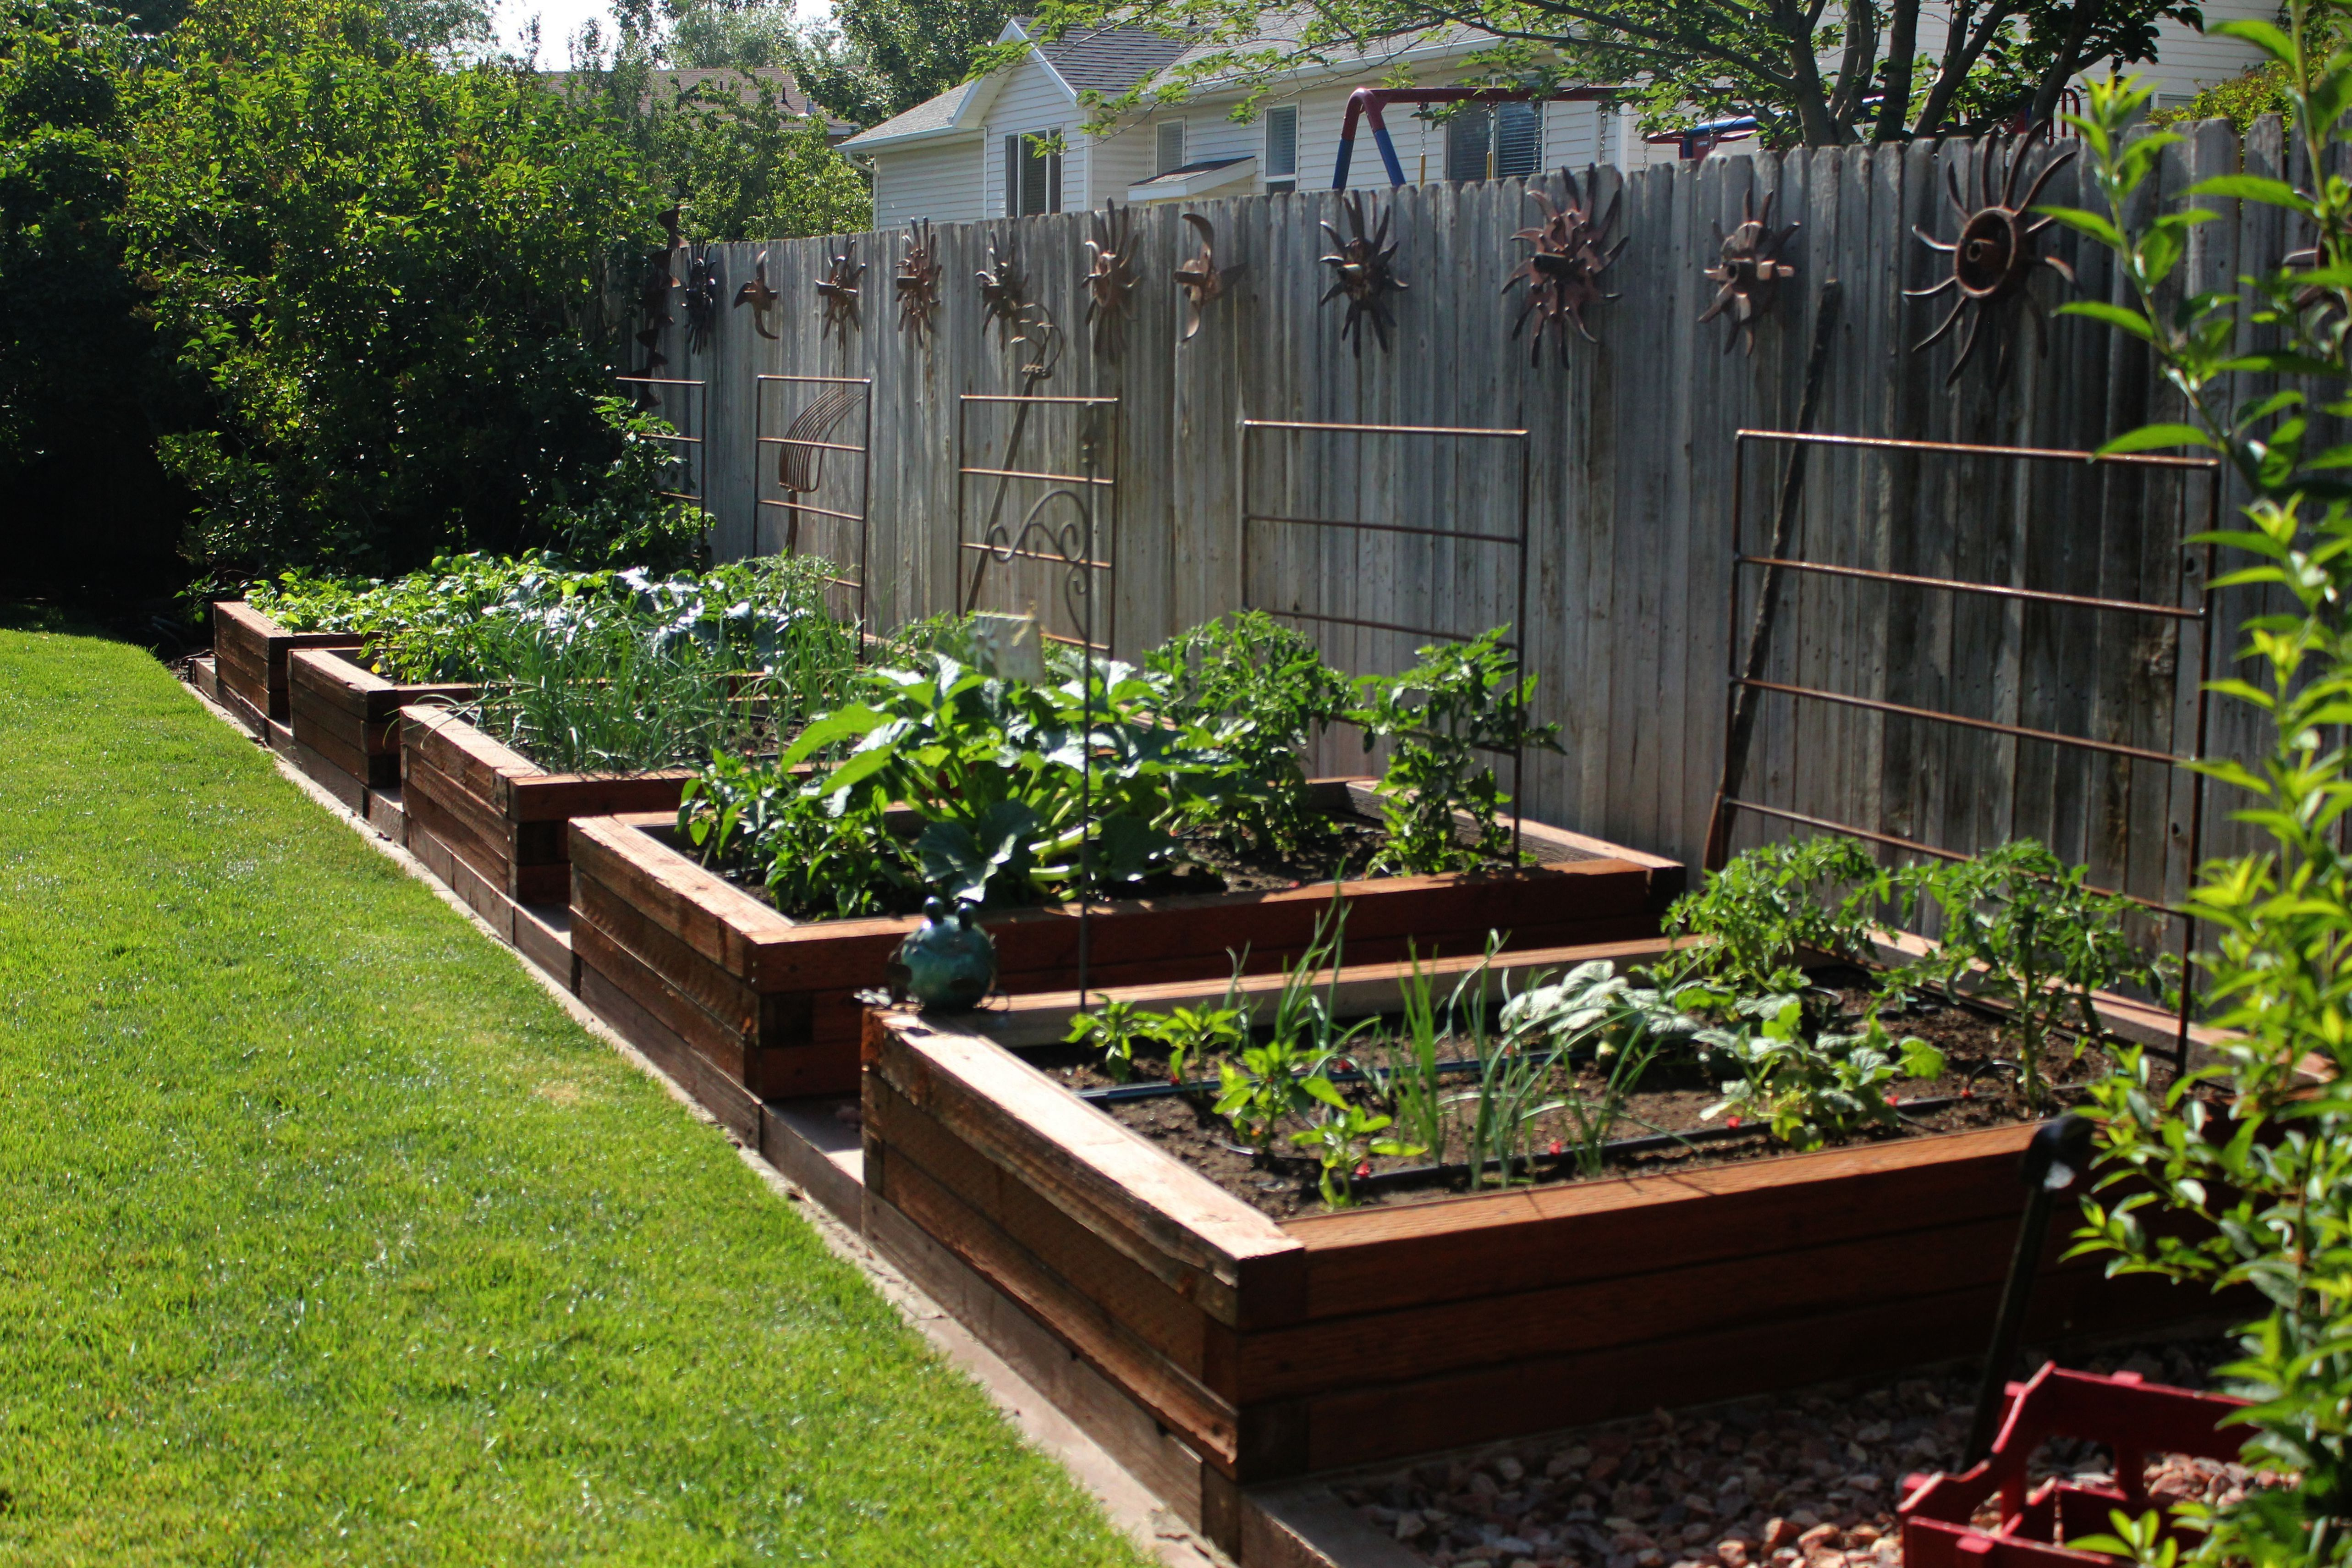 Raised Garden Bed Plans Railroad Ties Although Garden Landscaping Exeter Lawn Design Garden Layout Home Vegetable Garden